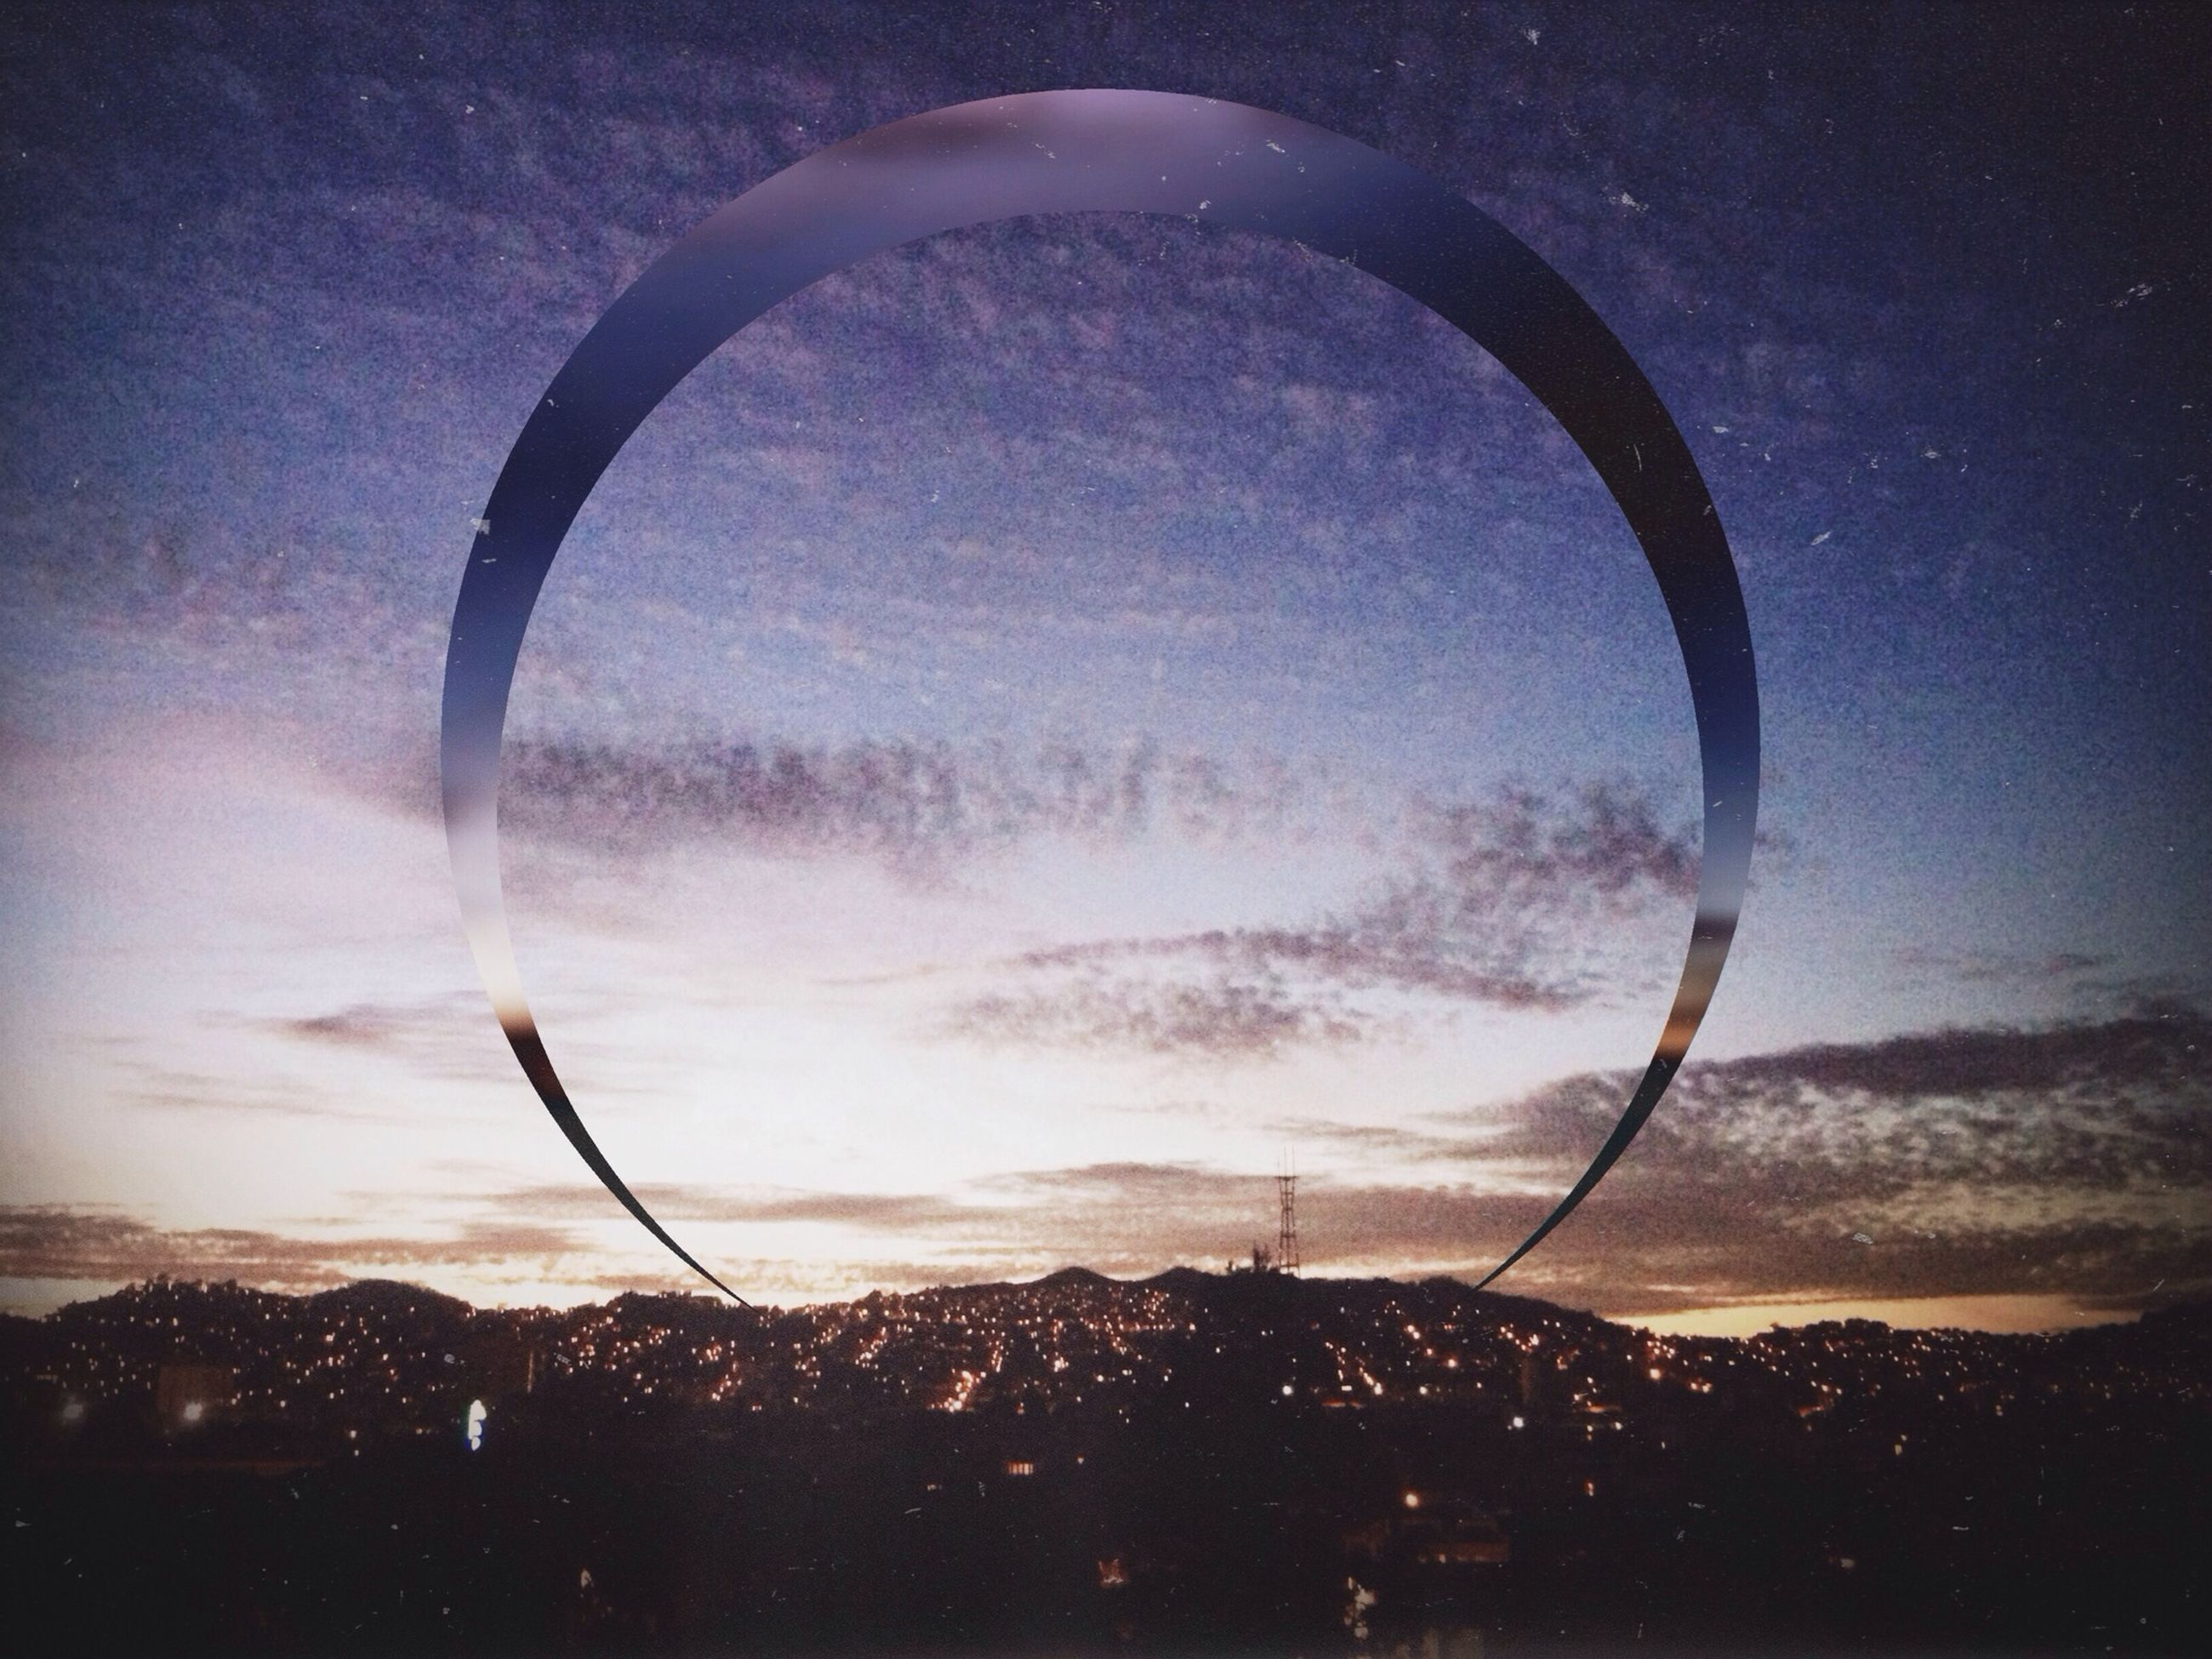 sky, sunset, silhouette, cloud - sky, scenics, beauty in nature, nature, dusk, sphere, tranquility, circle, mid-air, tranquil scene, transparent, landscape, outdoors, cloud, planetary moon, low angle view, no people